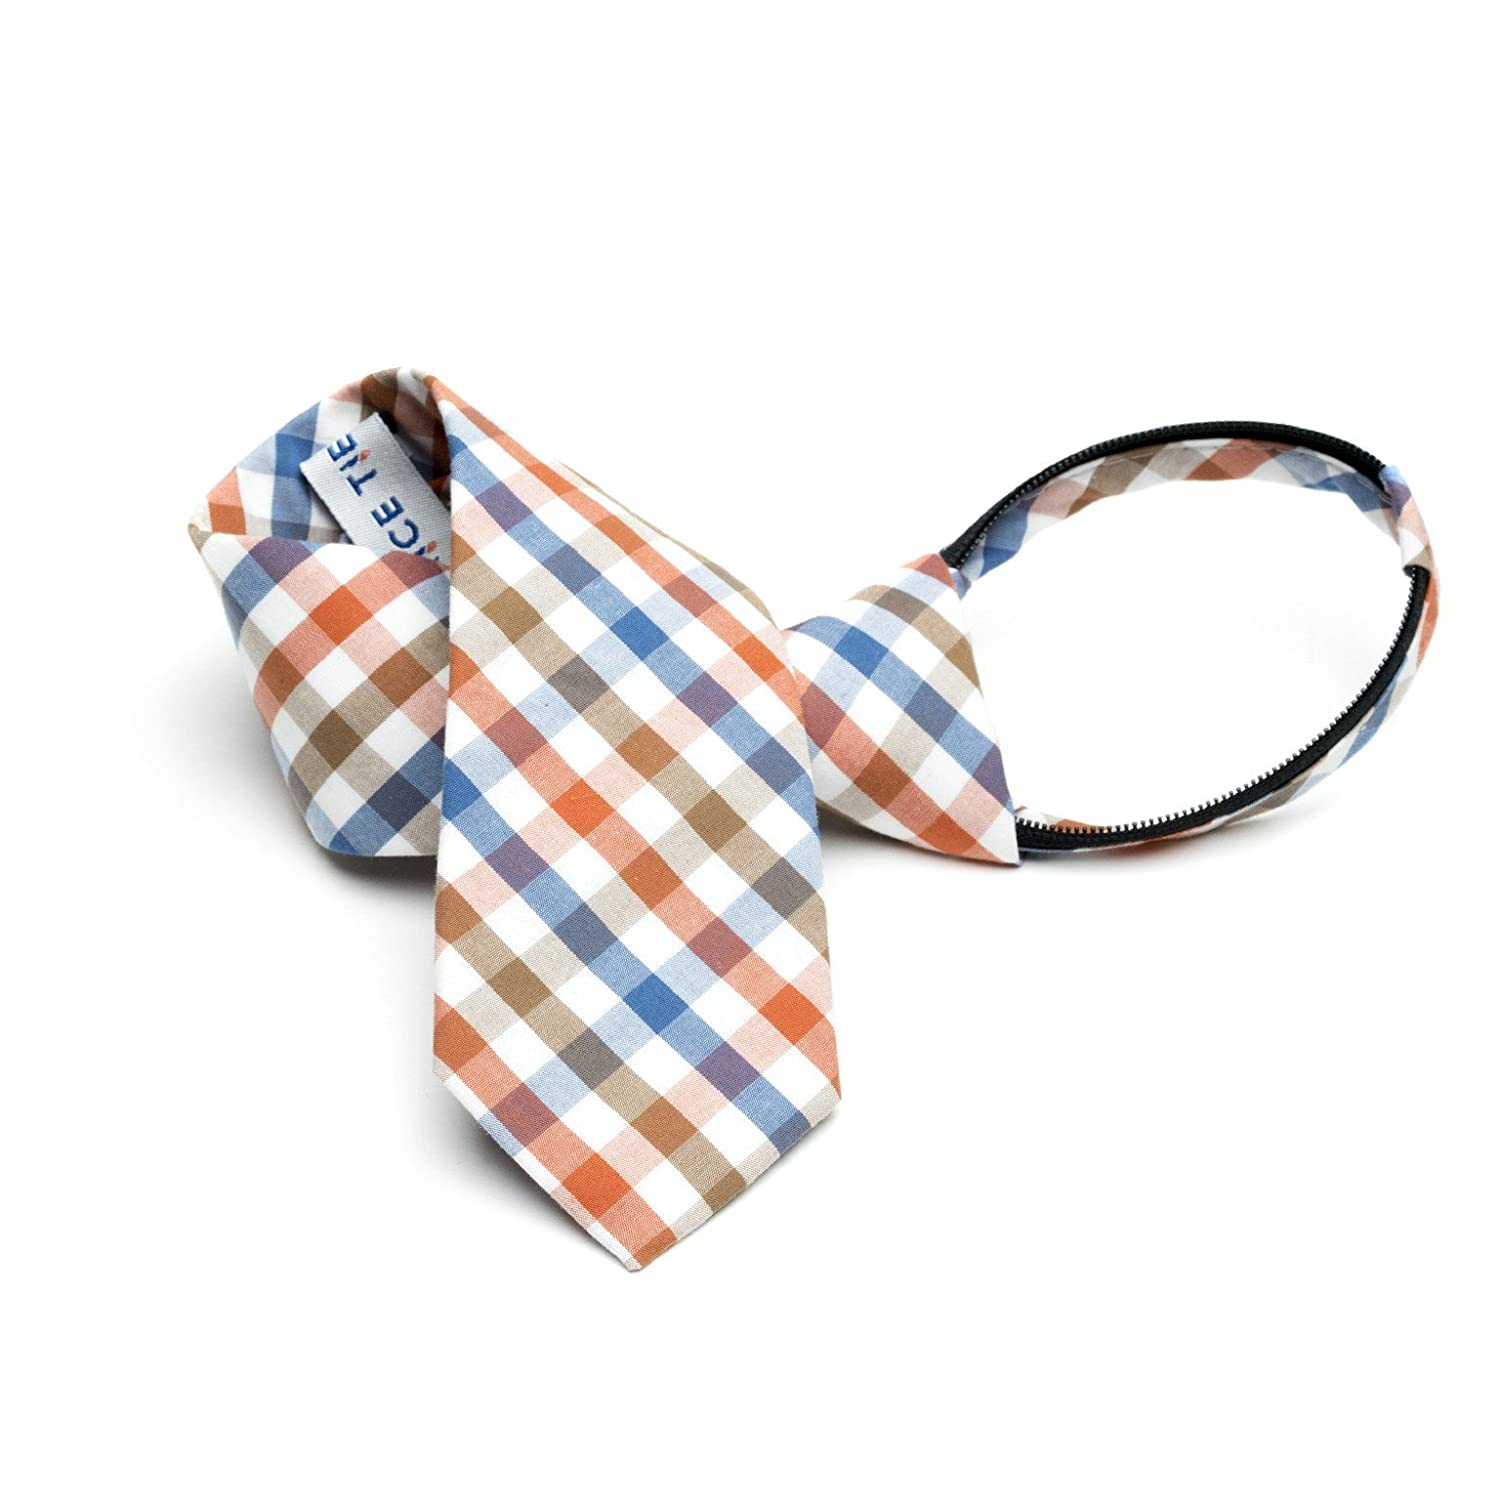 Picnic - Orange, Blue, Brown, White Gingham Kids Zipper Tie PicnicKidsZipper